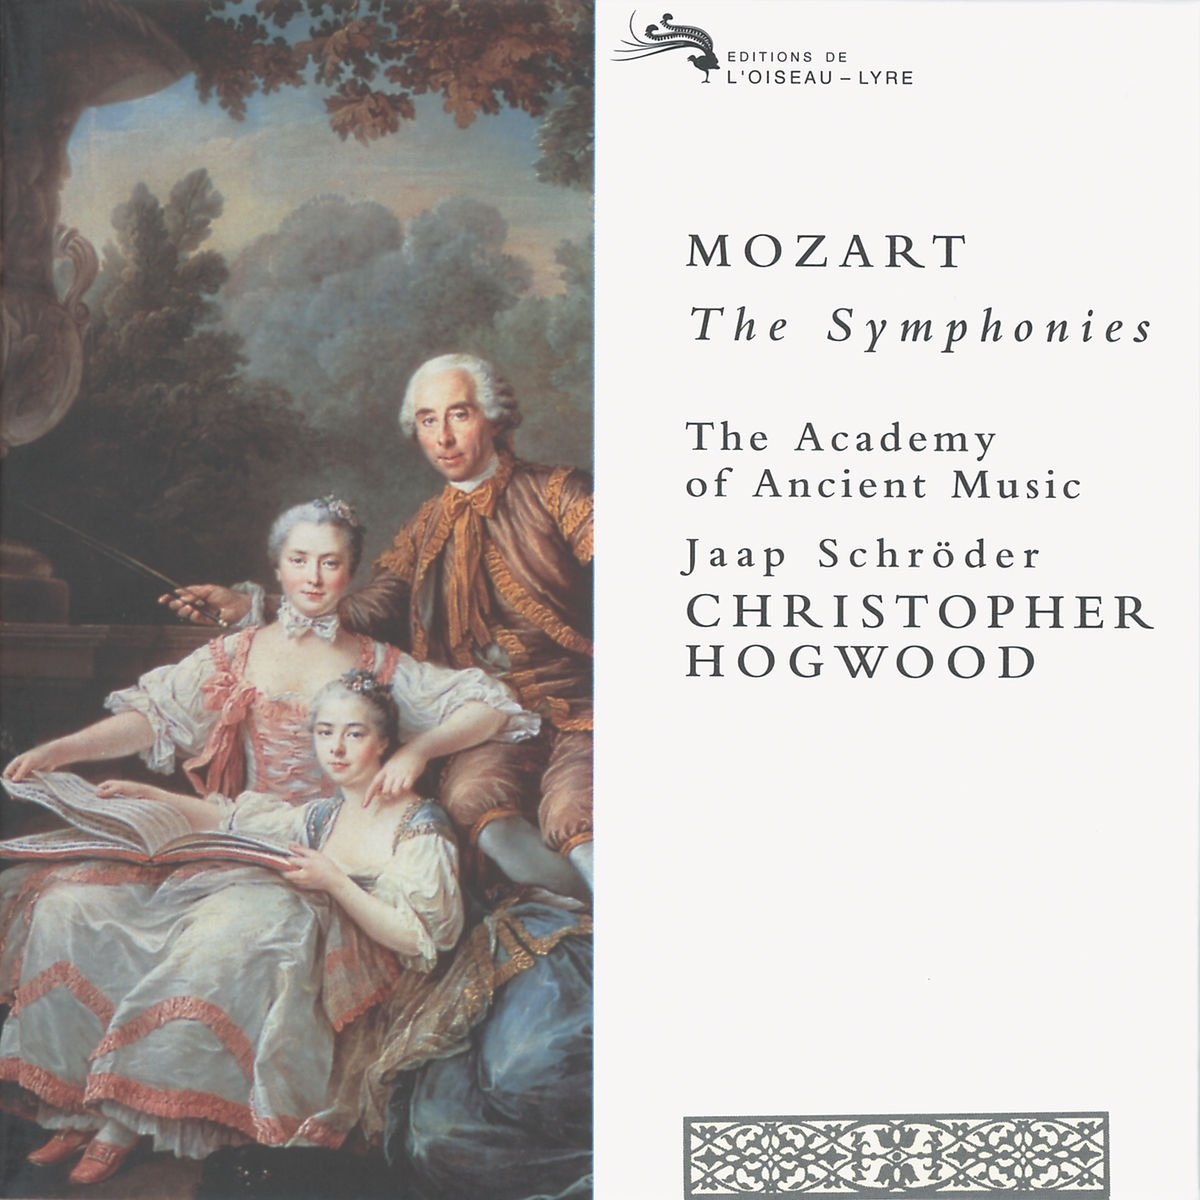 Mozart: The Symphonies (Nos 1-41, plus 27 other symphonic works) /AAM * Schroder * Hogwood by L' Oiseau-Lyre